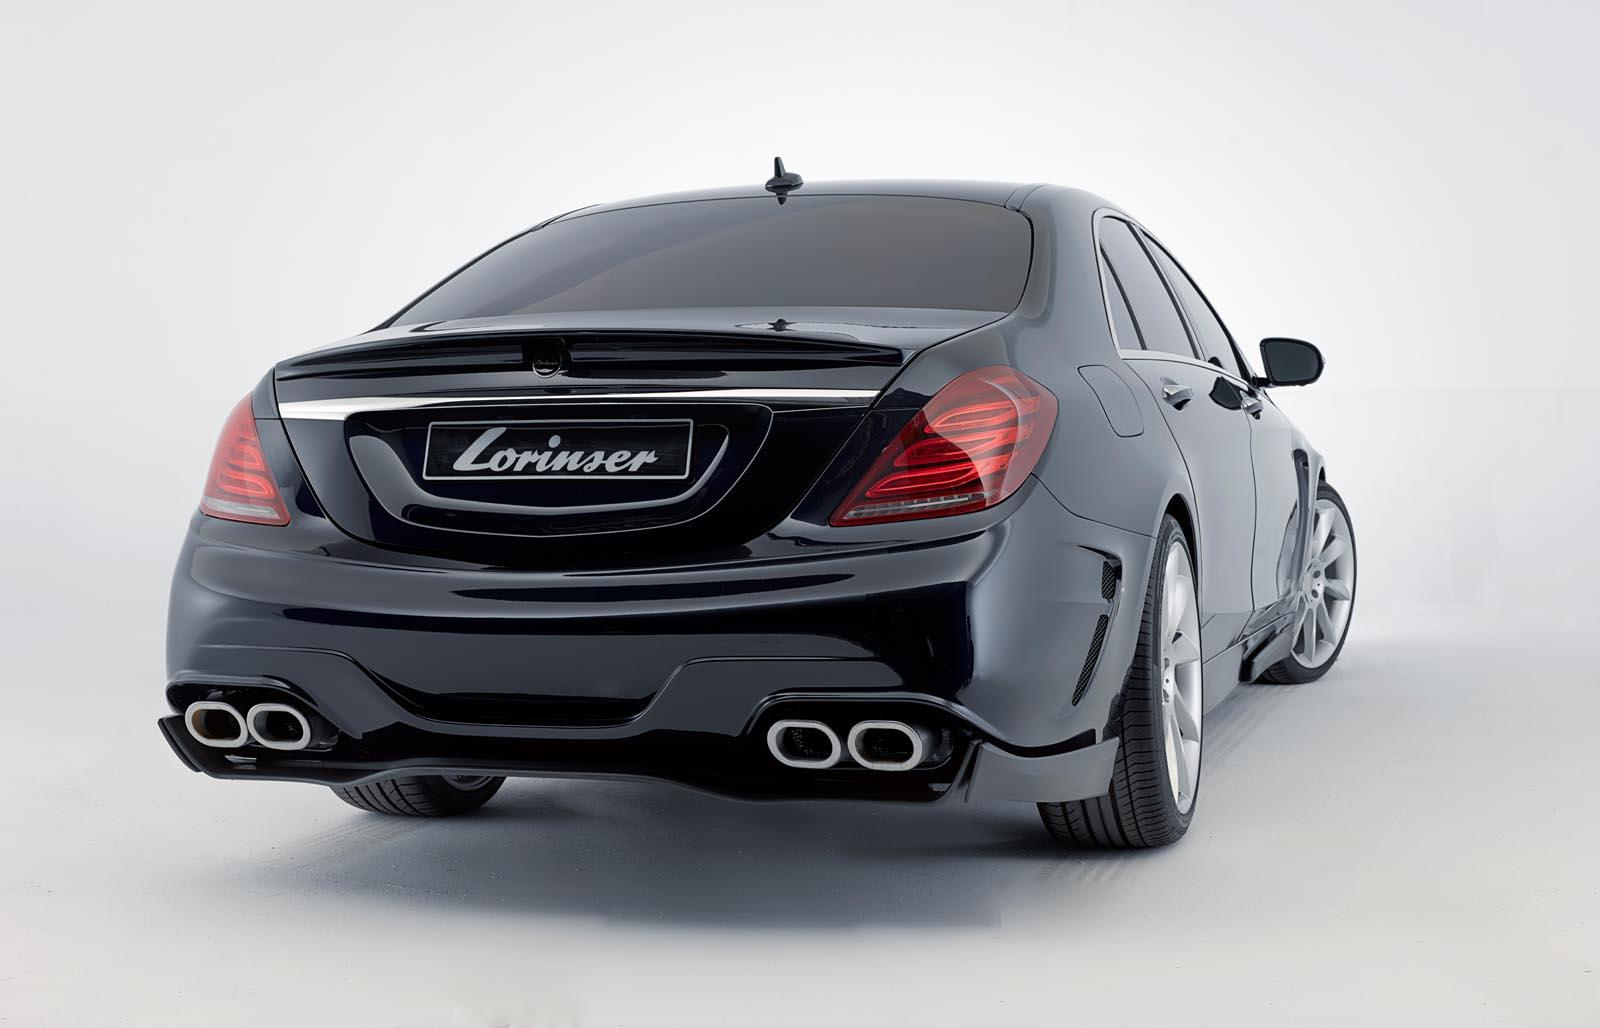 Lorinser 2013 mercedes benz s class 530hp and 800nm for 2013 mercedes benz s class